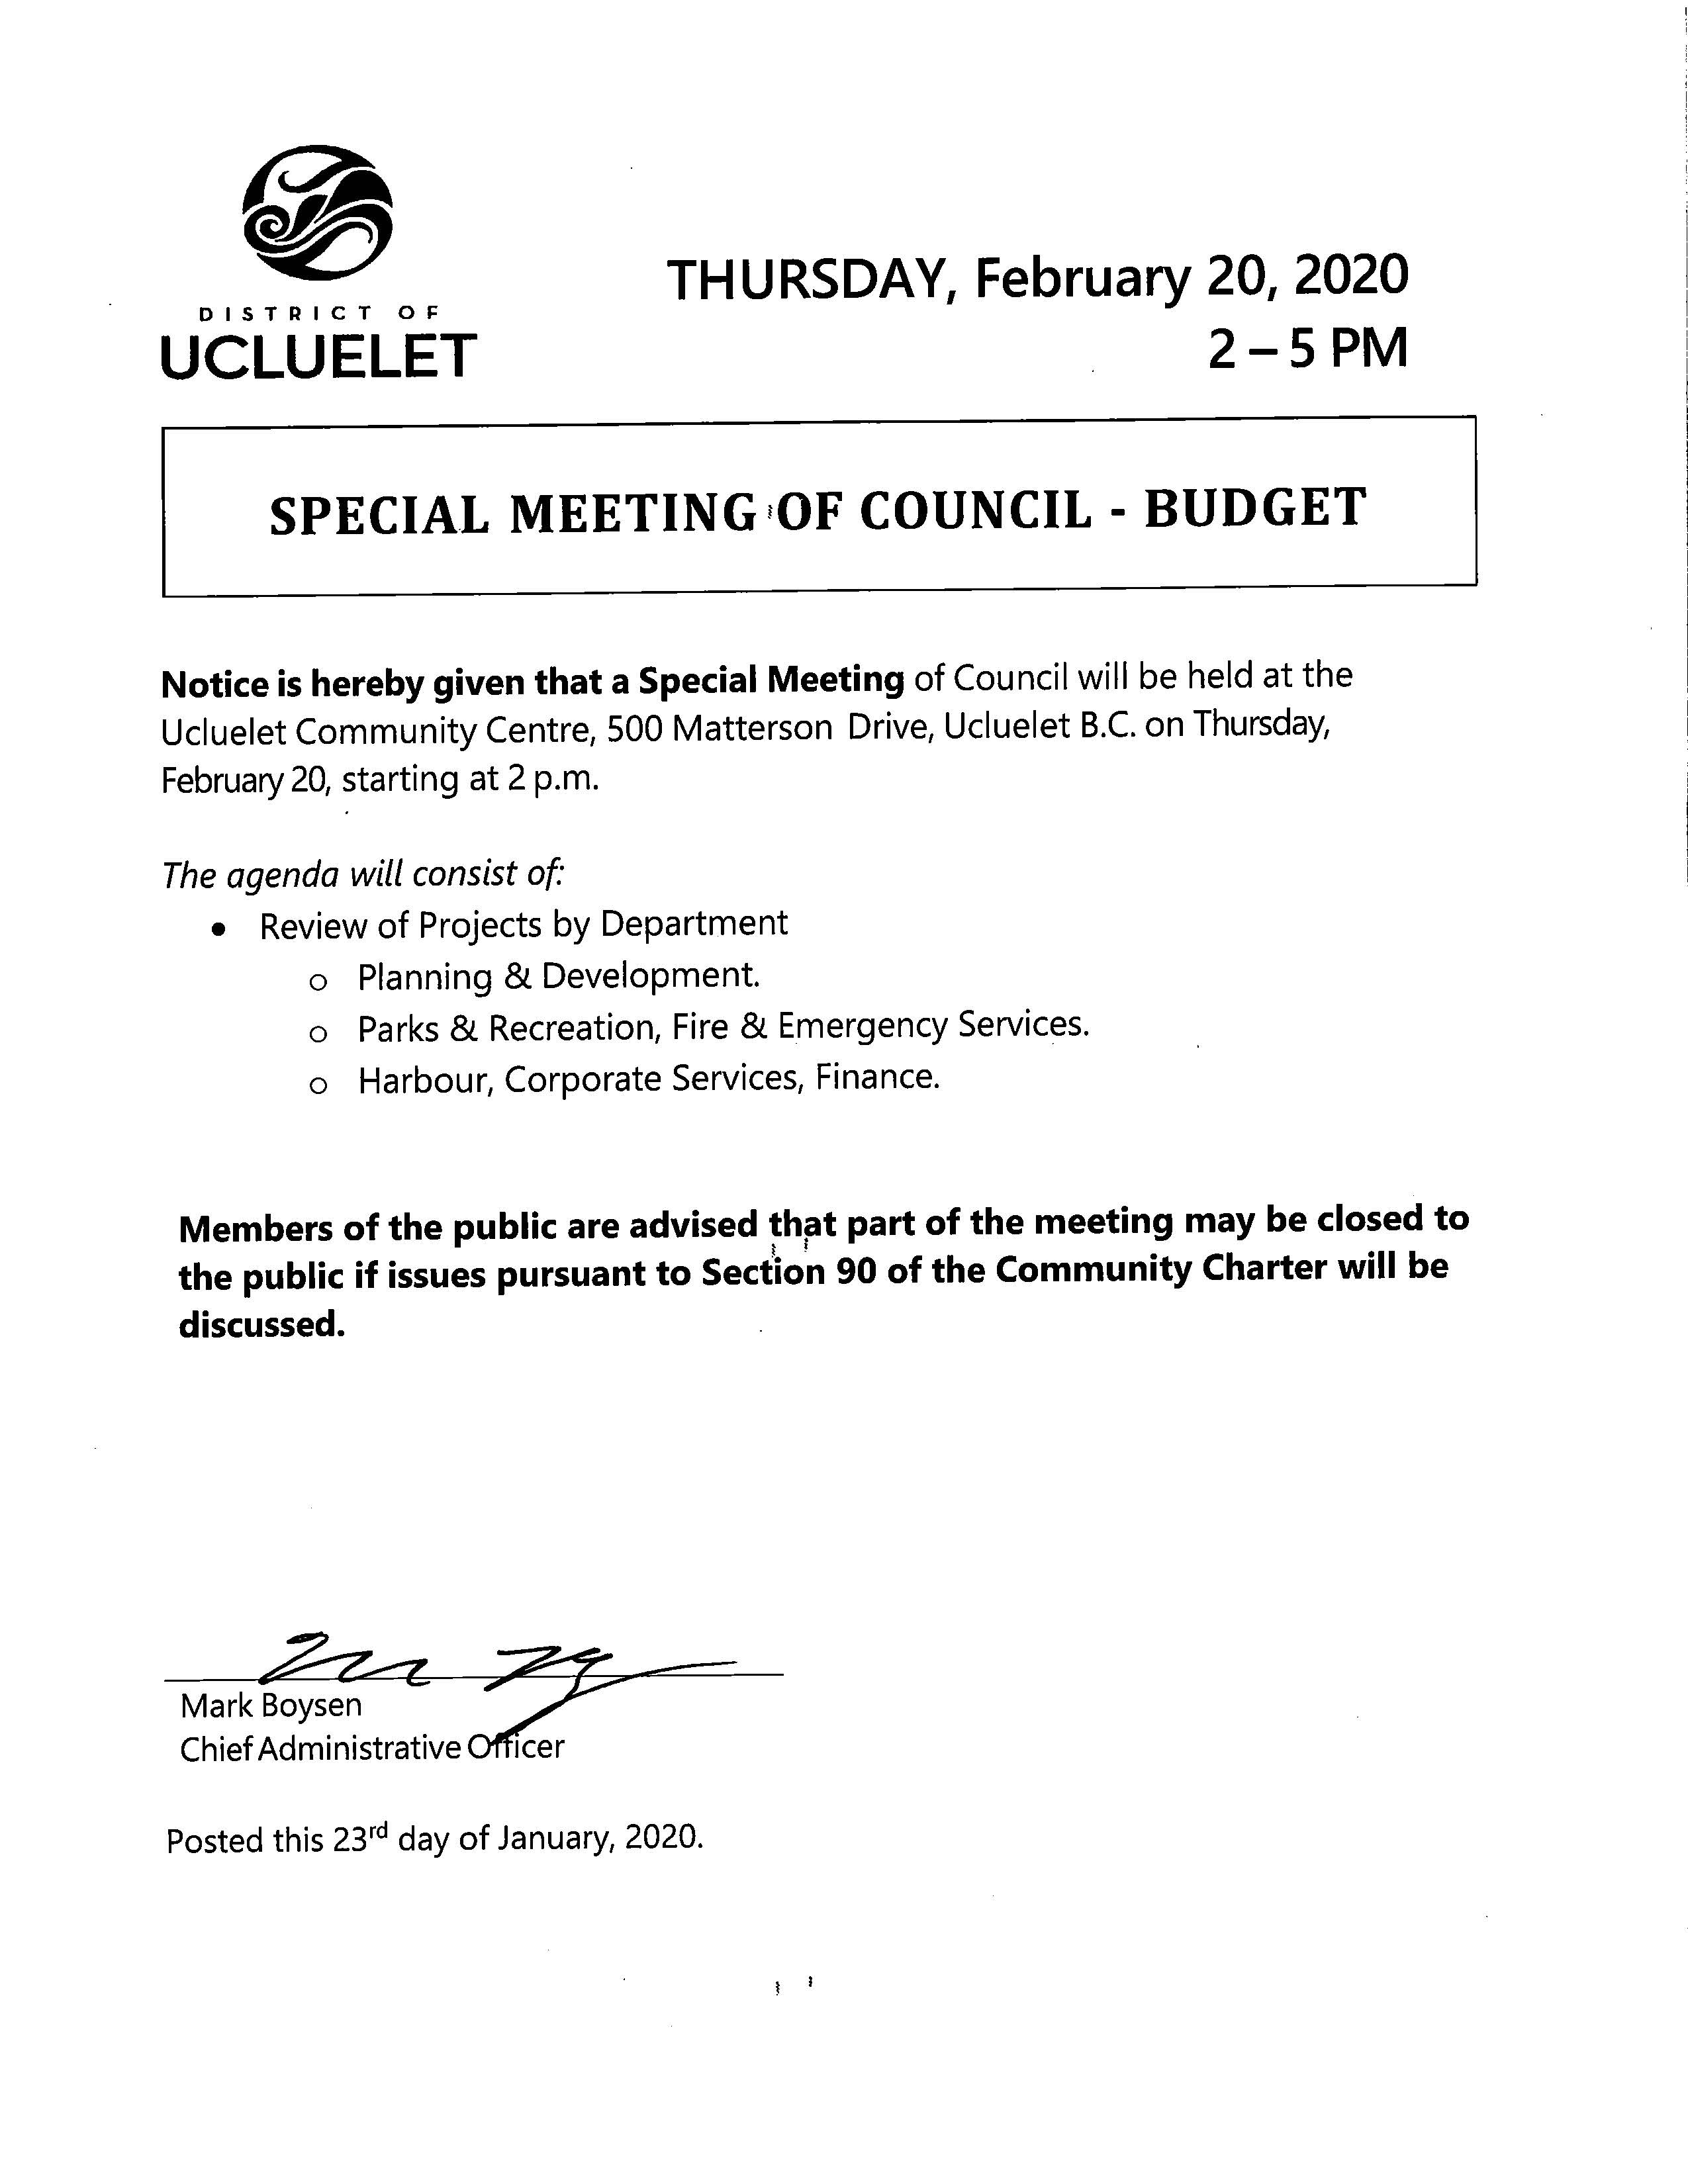 2020 02 20 Special Budget Meeting Notice signed